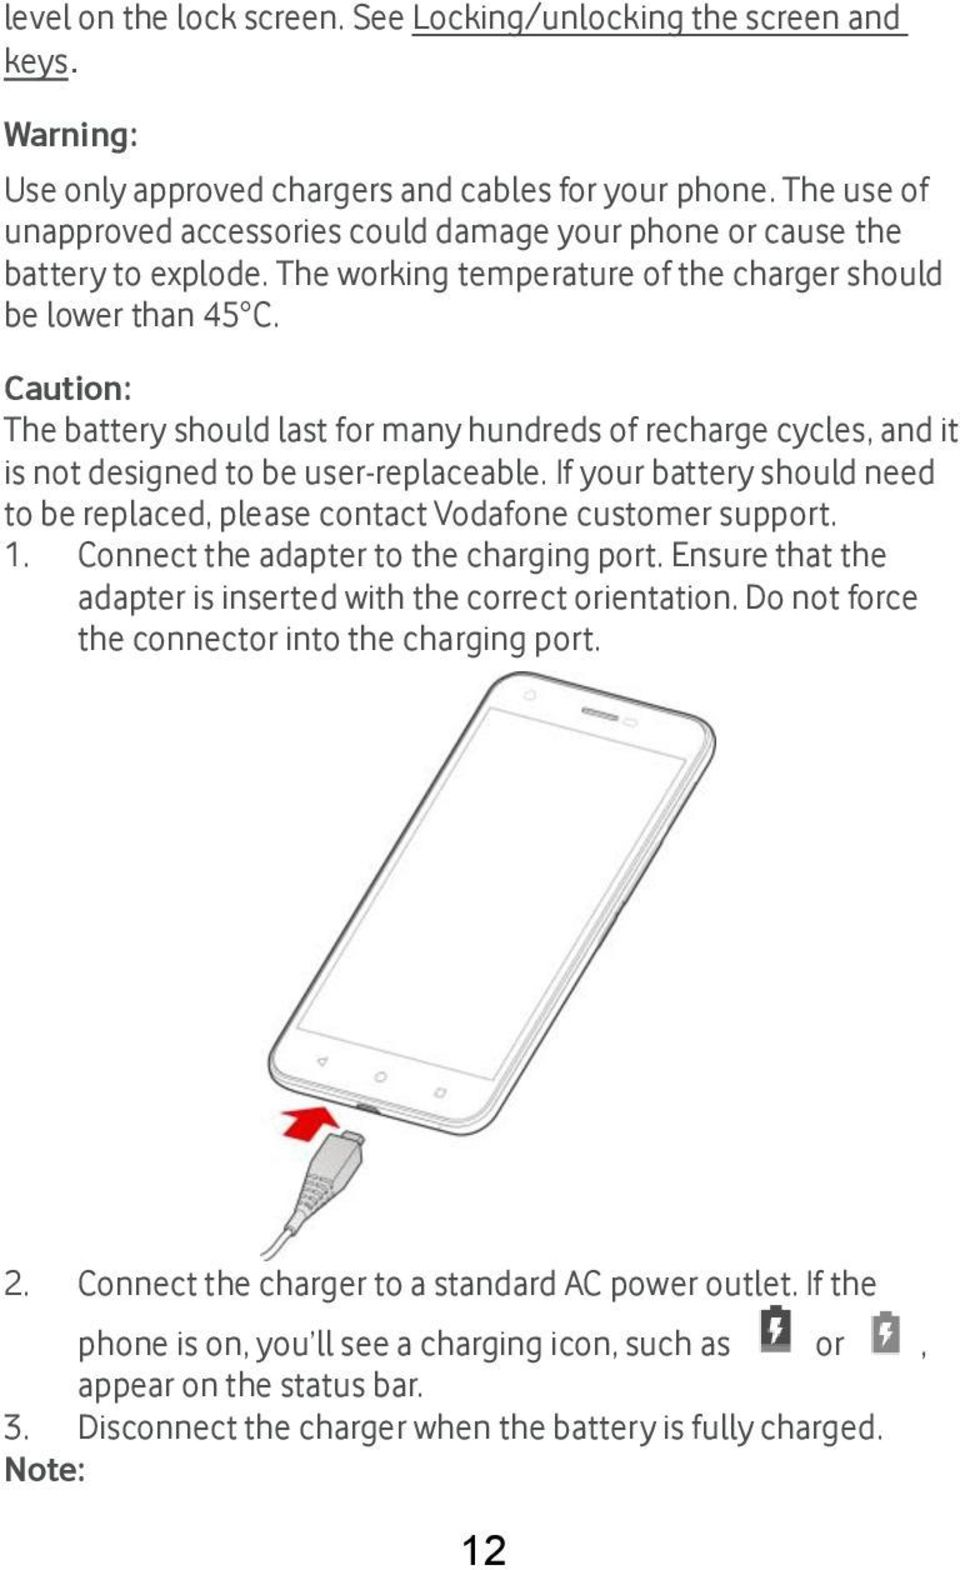 Caution: The battery should last for many hundreds of recharge cycles, and it is not designed to be user-replaceable.